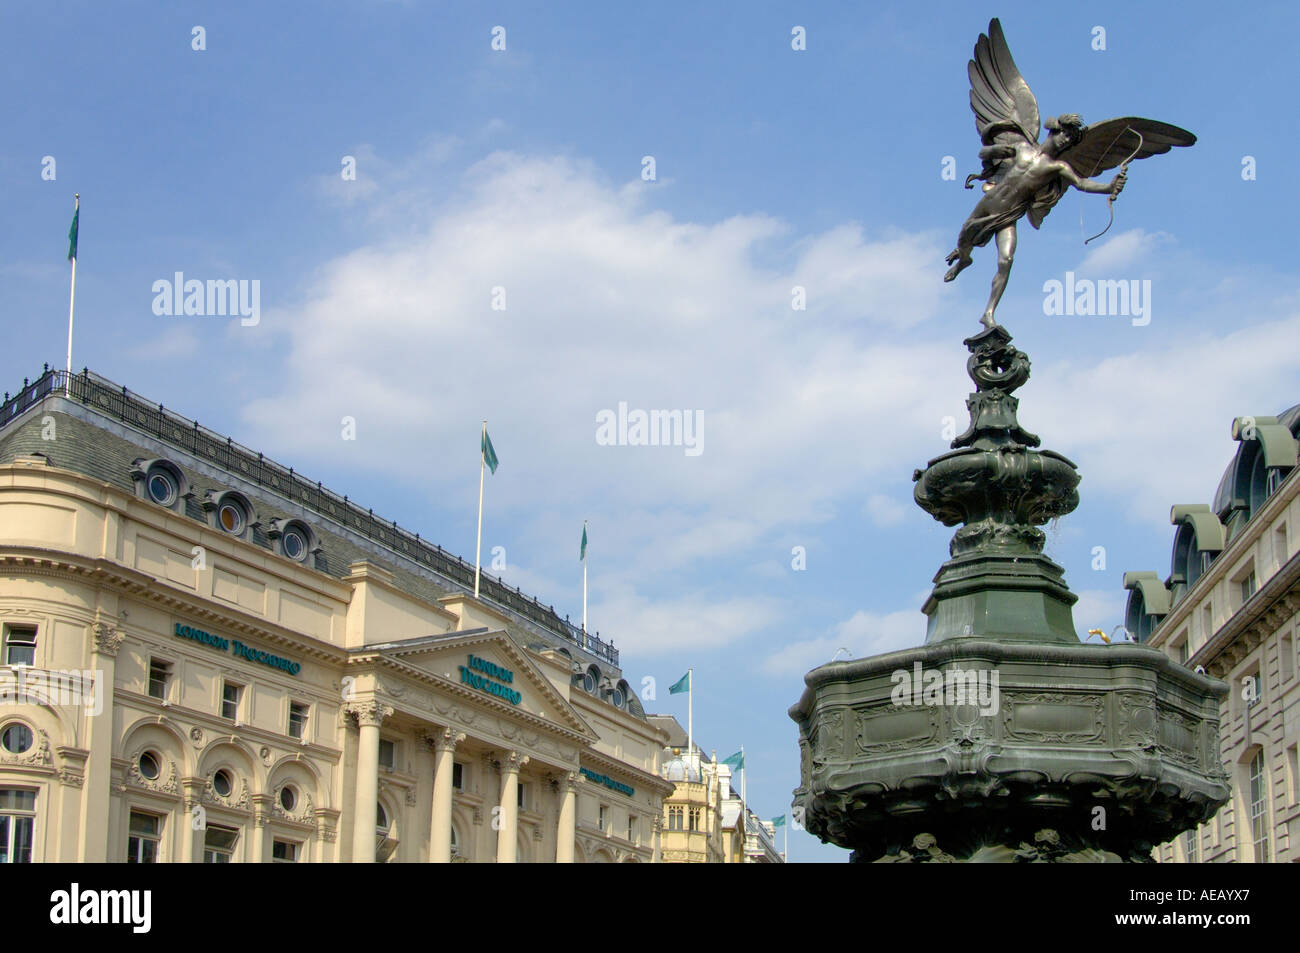 Trocadero building and Shaftesbury Memorial with Eros or Angel of Christian Charity Piccadilly circus London england - Stock Image